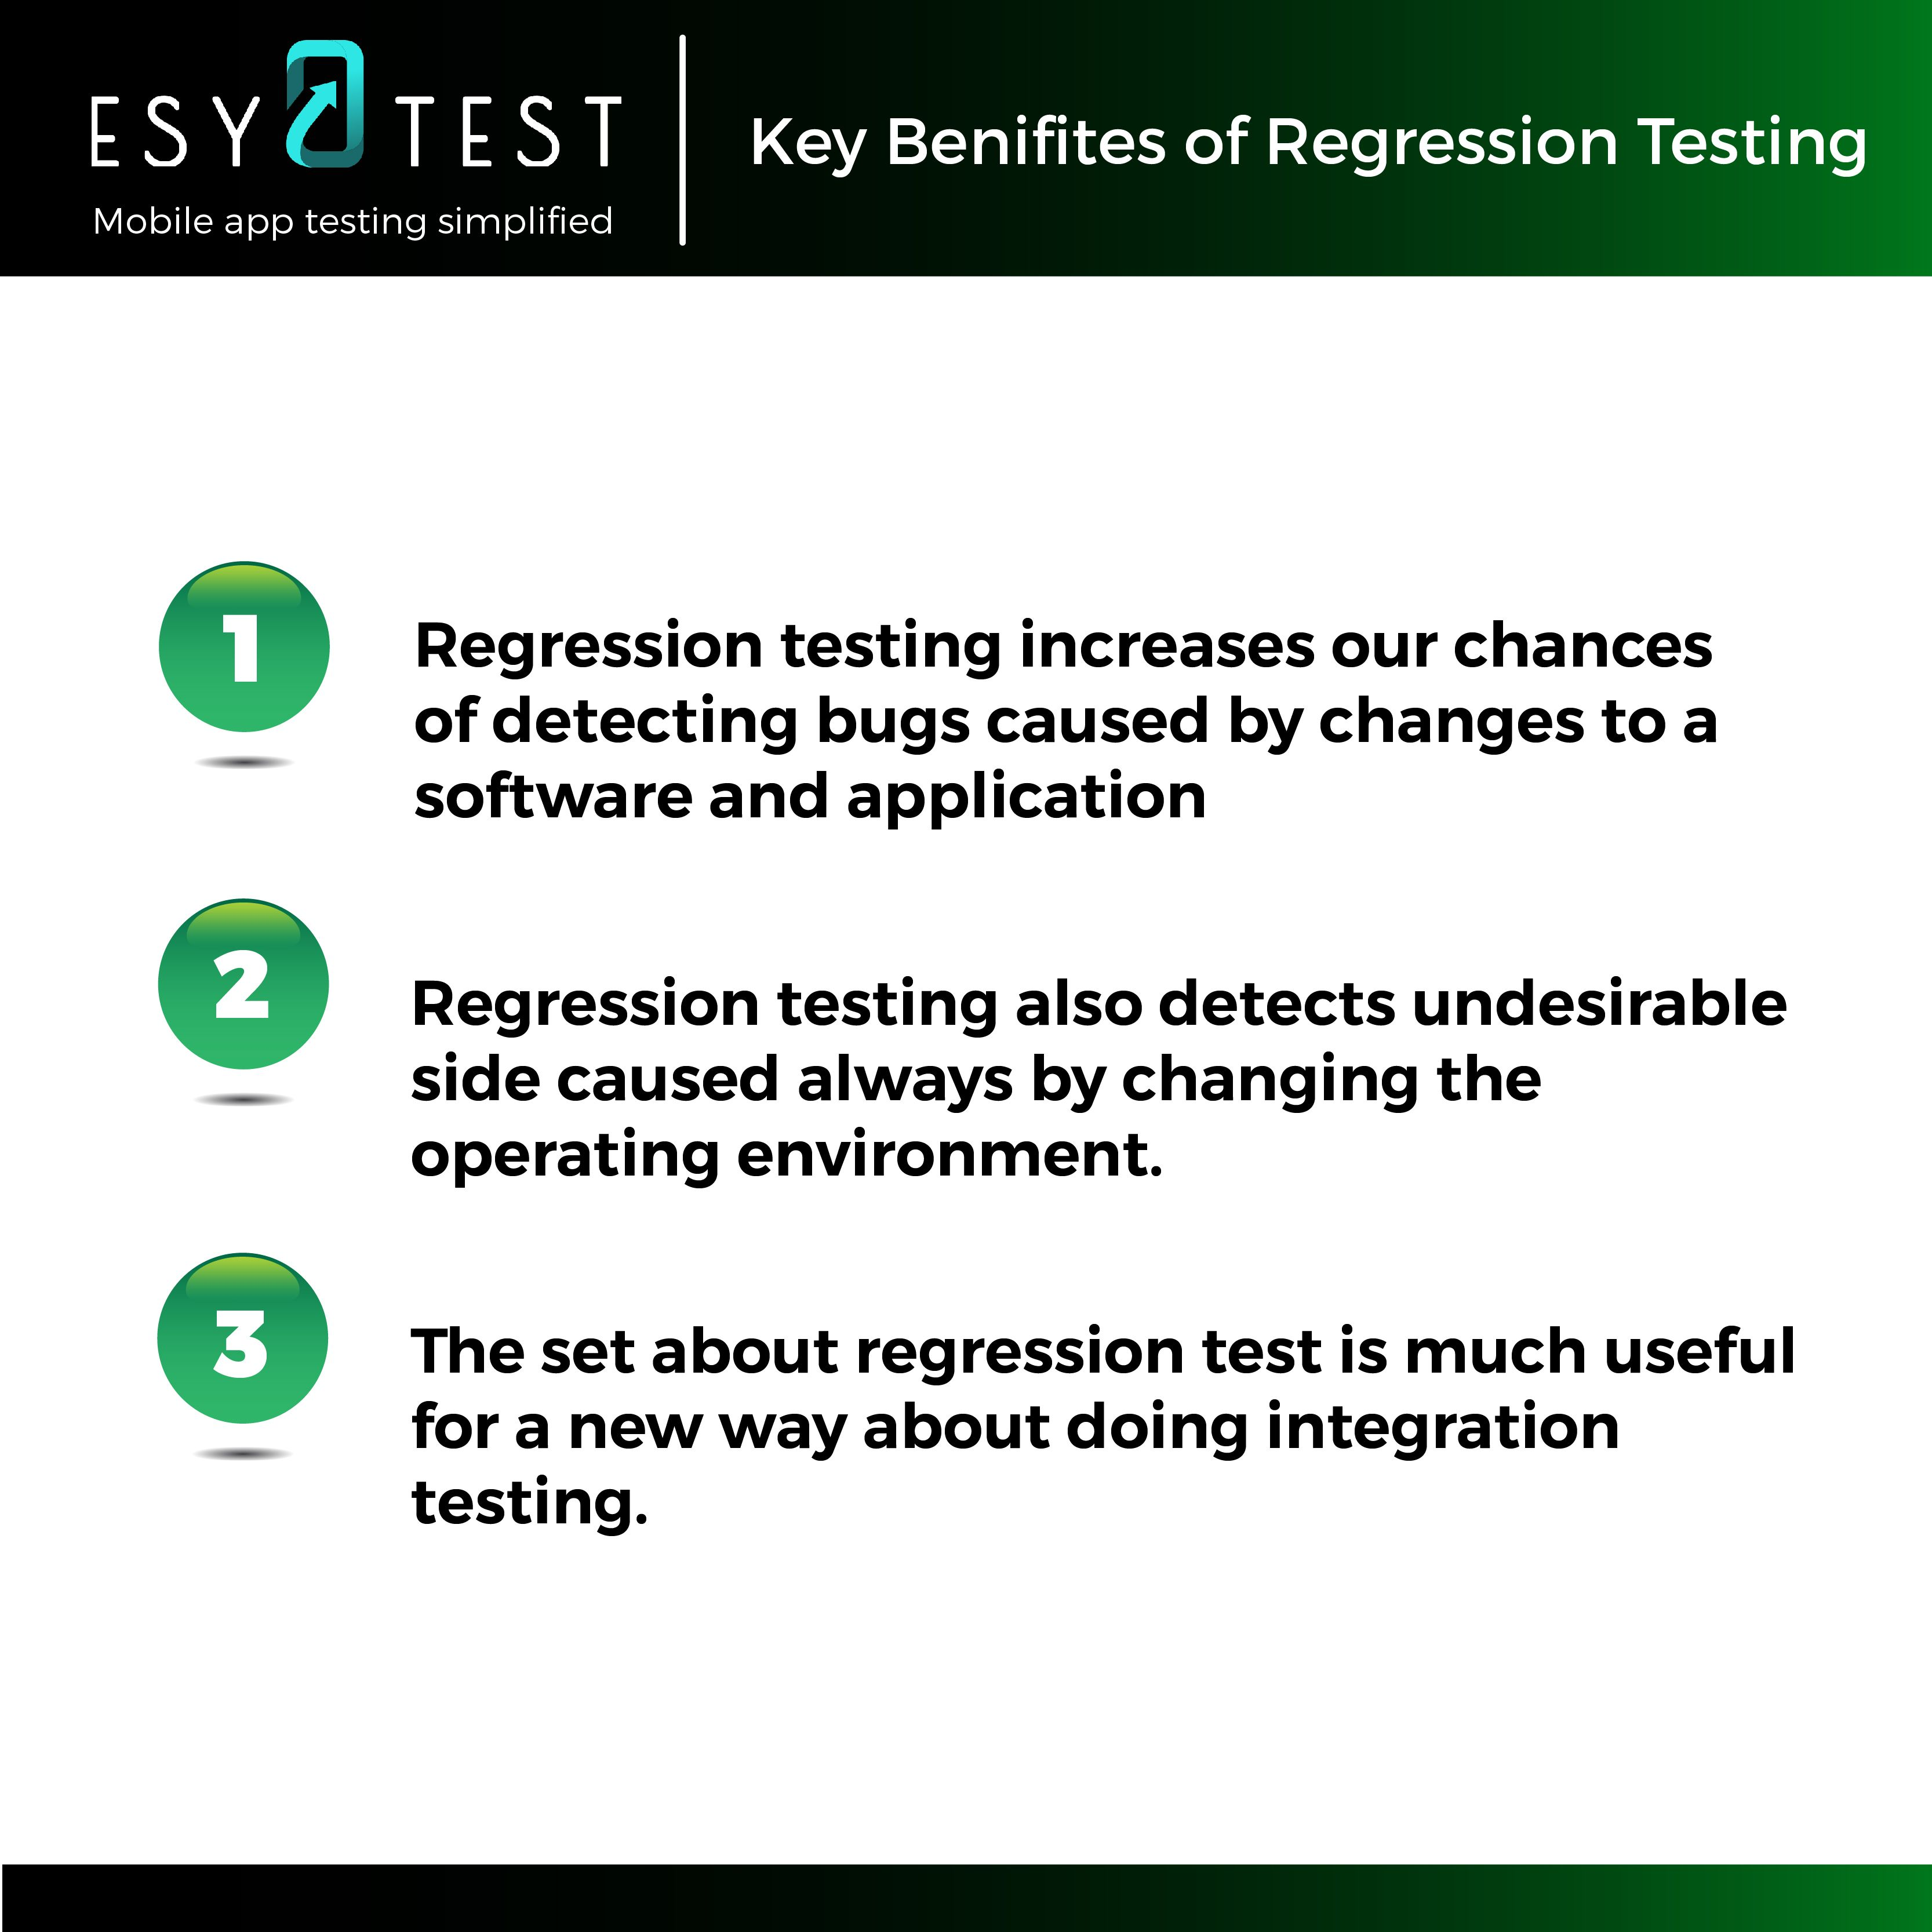 Key Benefits Of Regression Testing Regressiontesting Apptesting